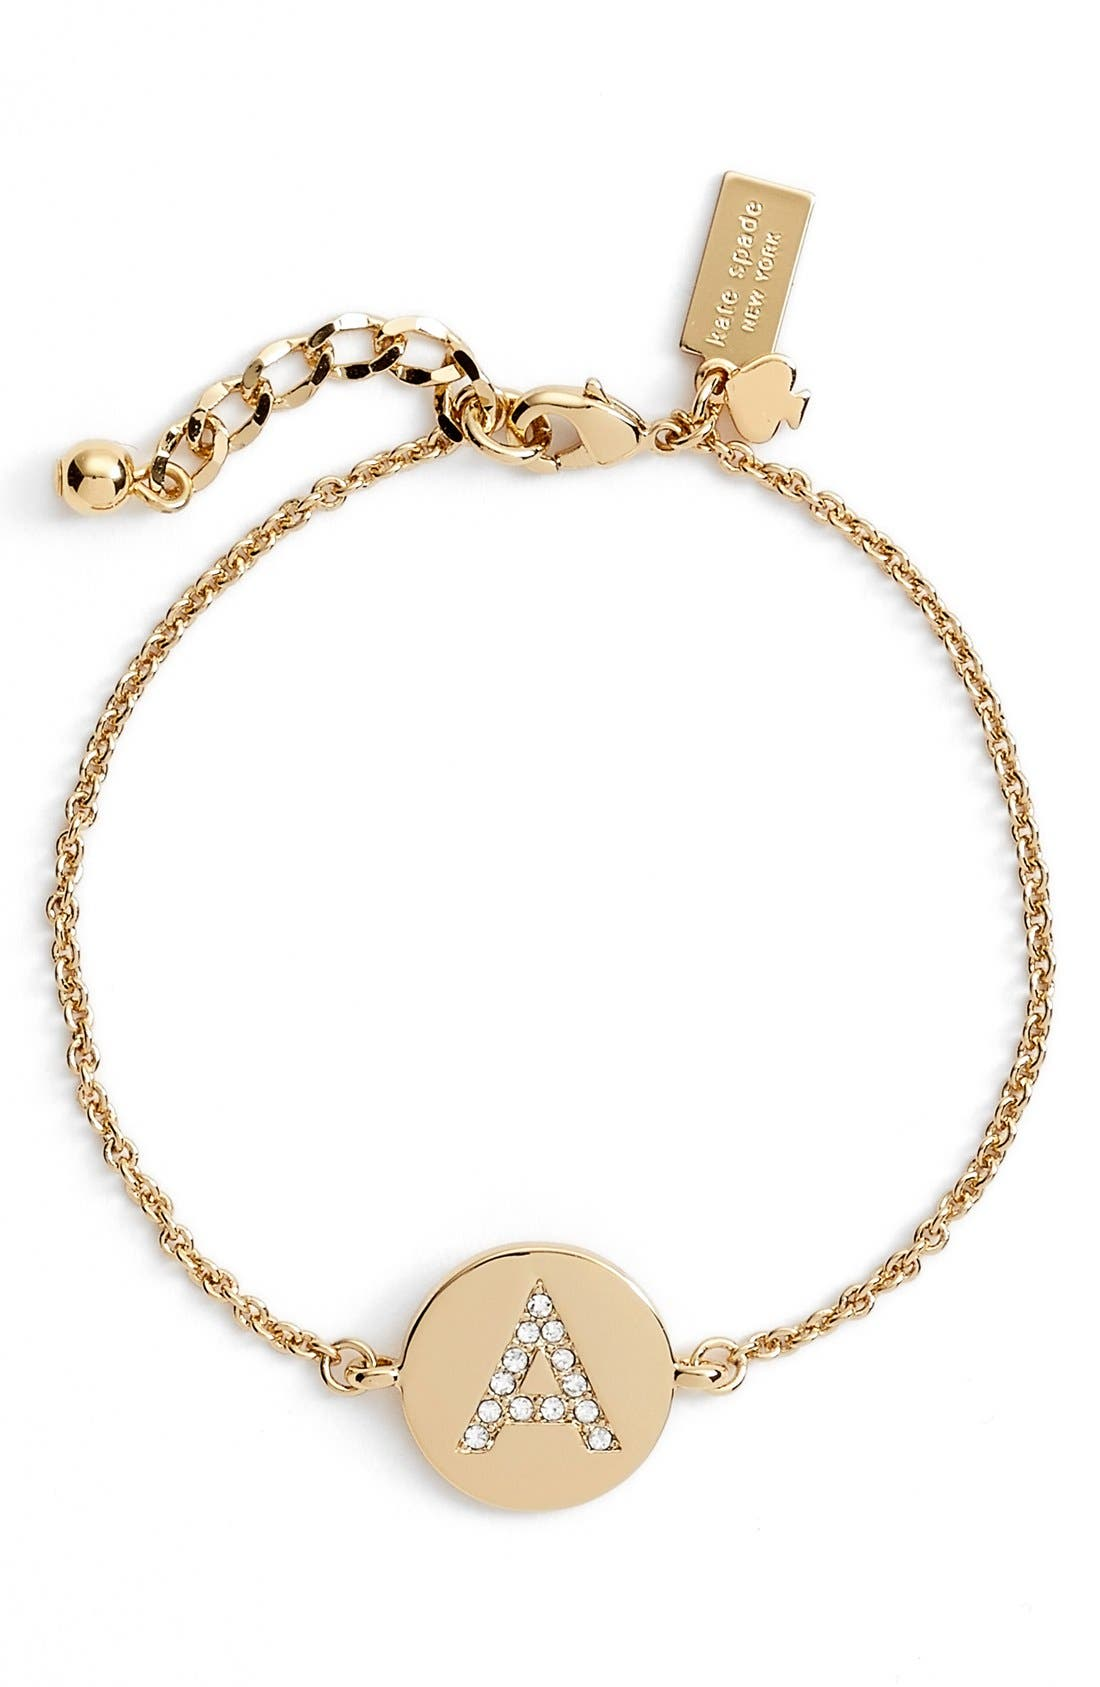 Main Image - kate spade new york 'north court' pavé initial charm bracelet